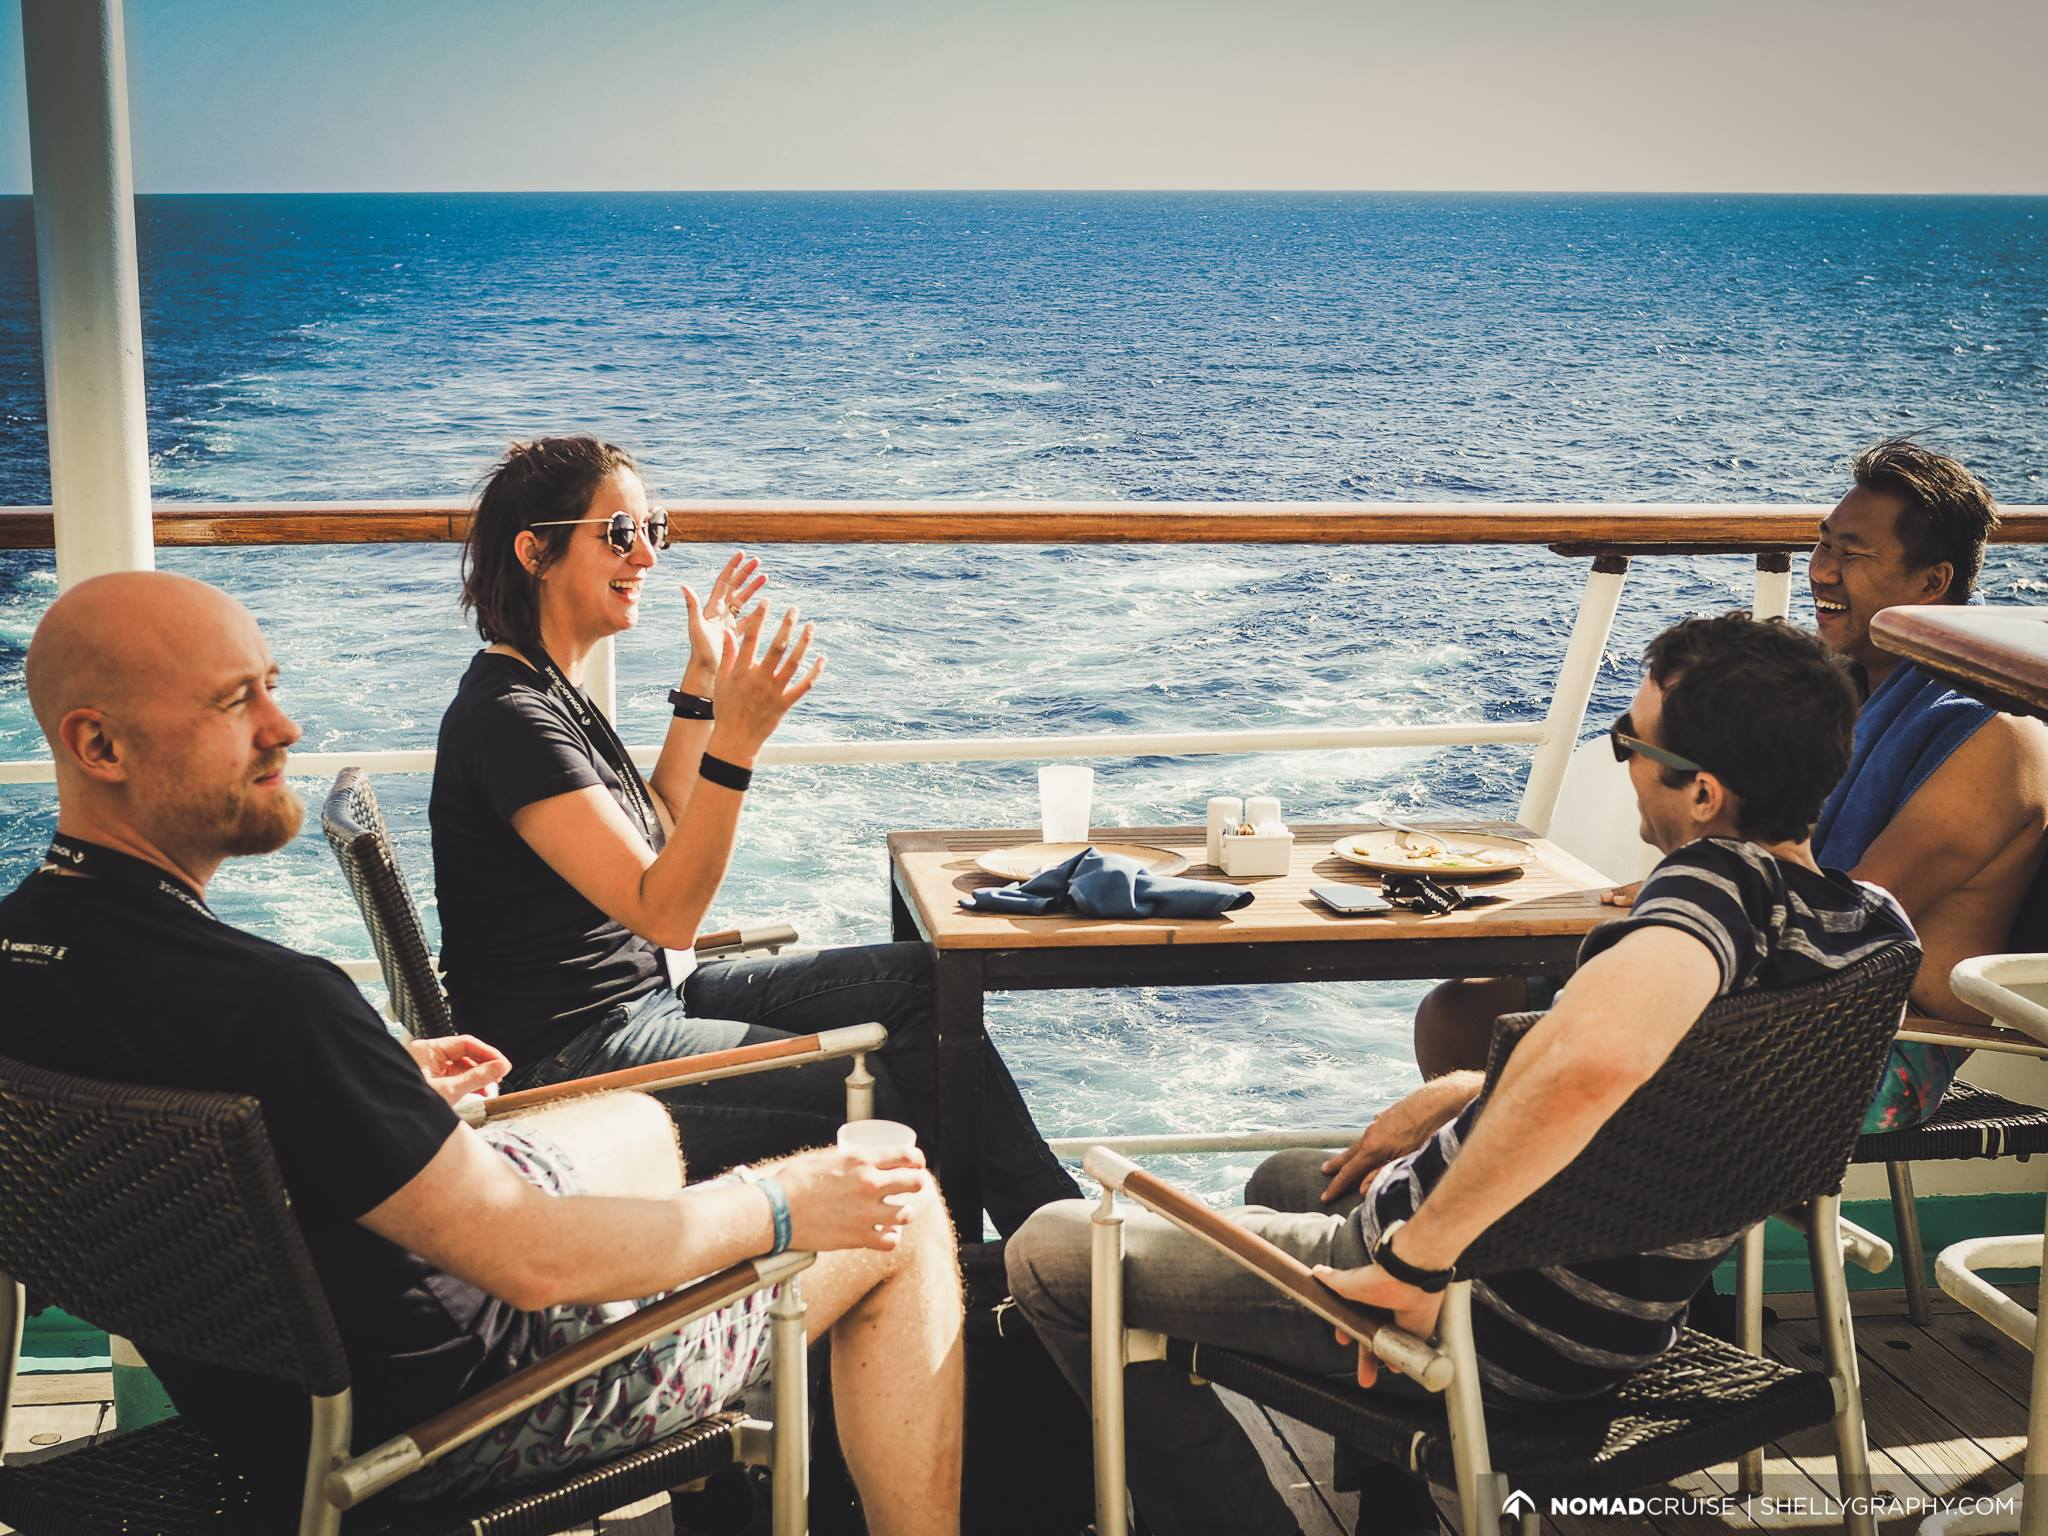 The real value of Nomad Cruise